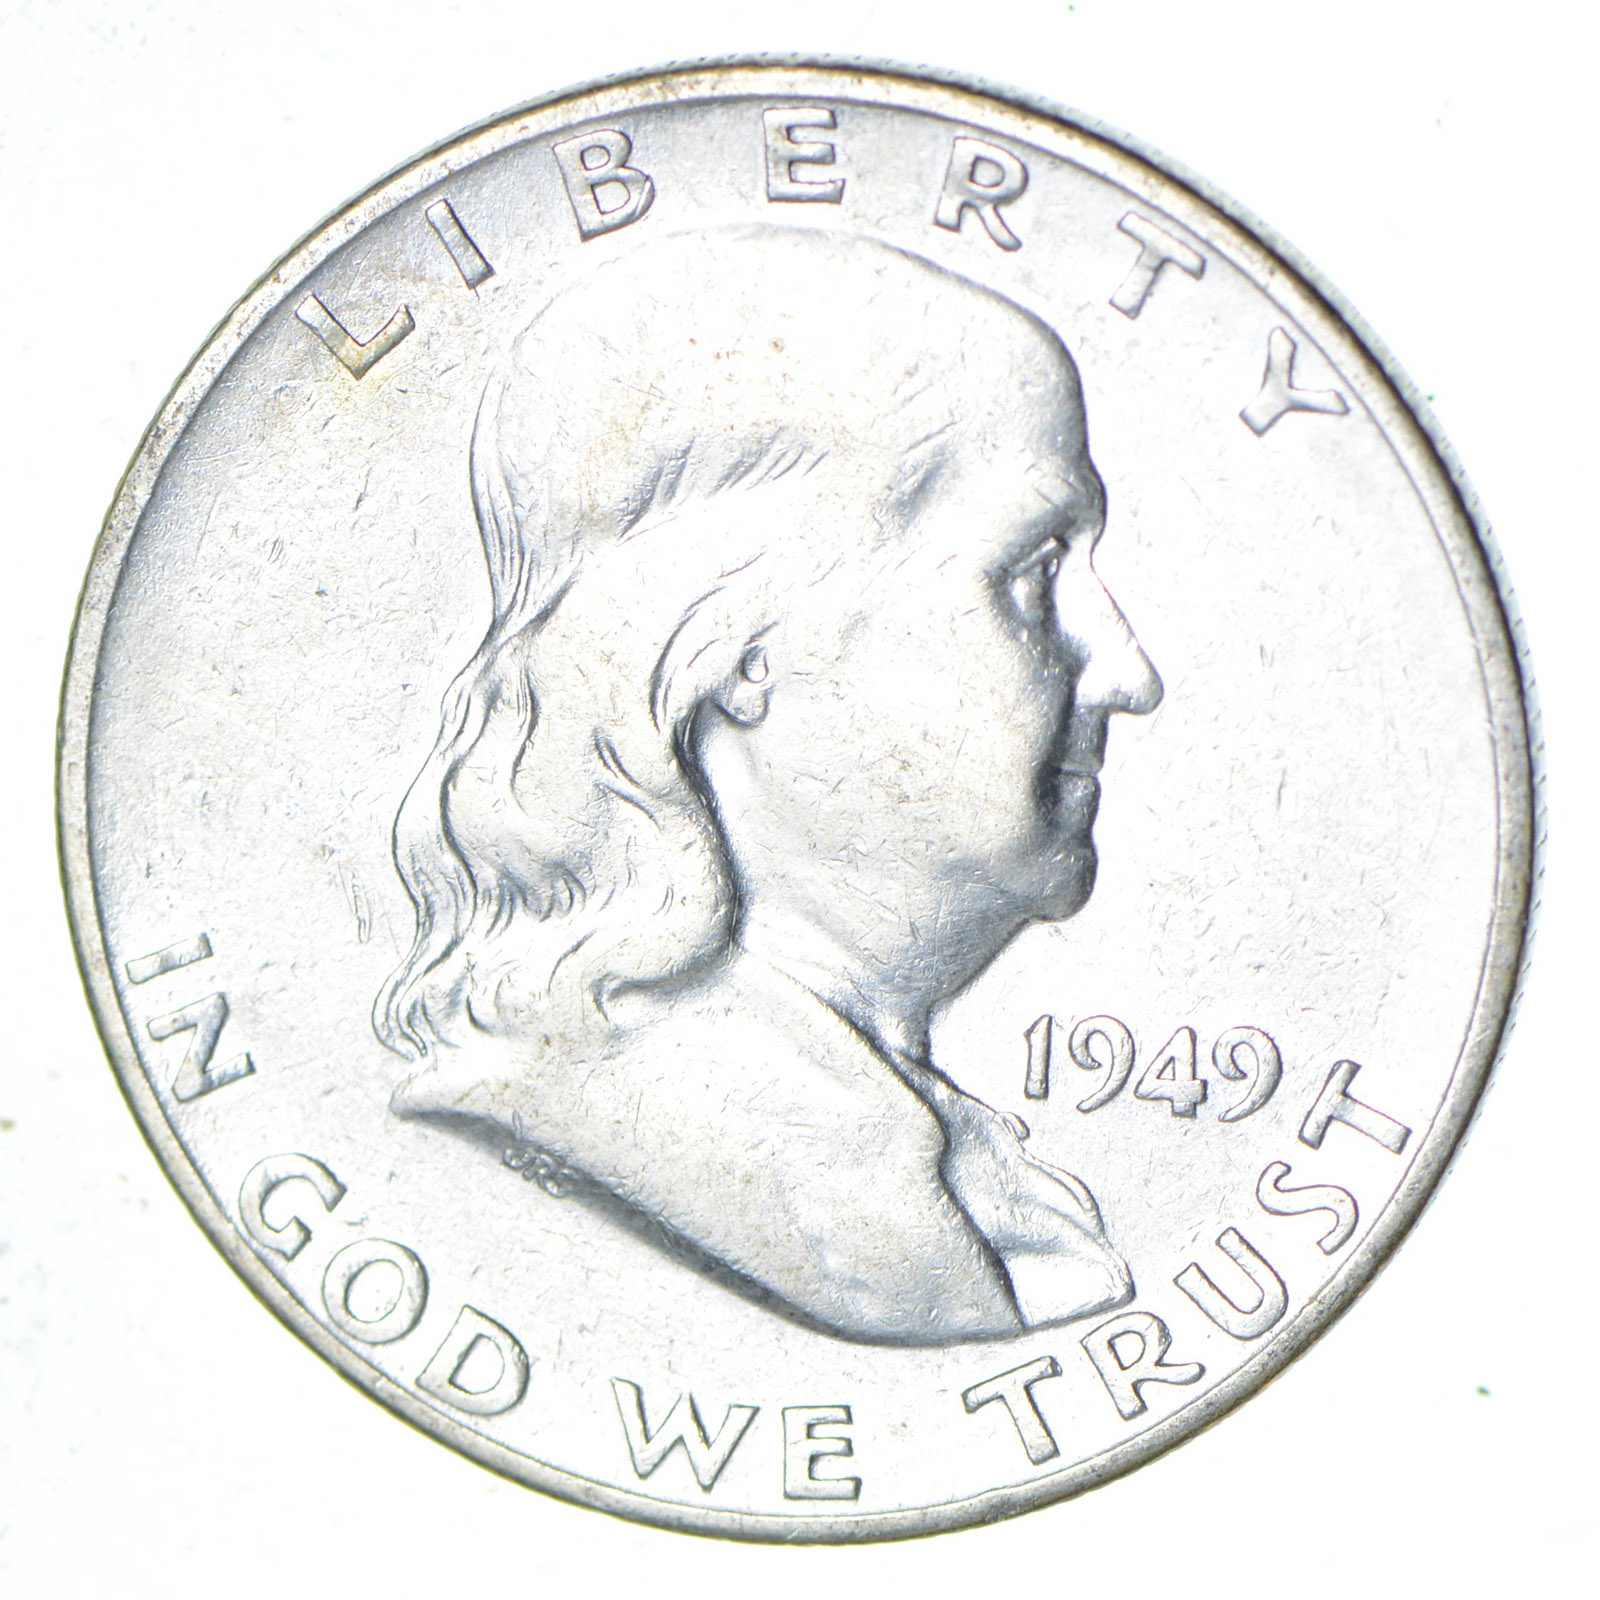 lowest mintage 1949 s franklin half dollar tough to find 90 1947 Half Dollar lowest mintage 1949 s franklin half dollar tough to find 90 silver